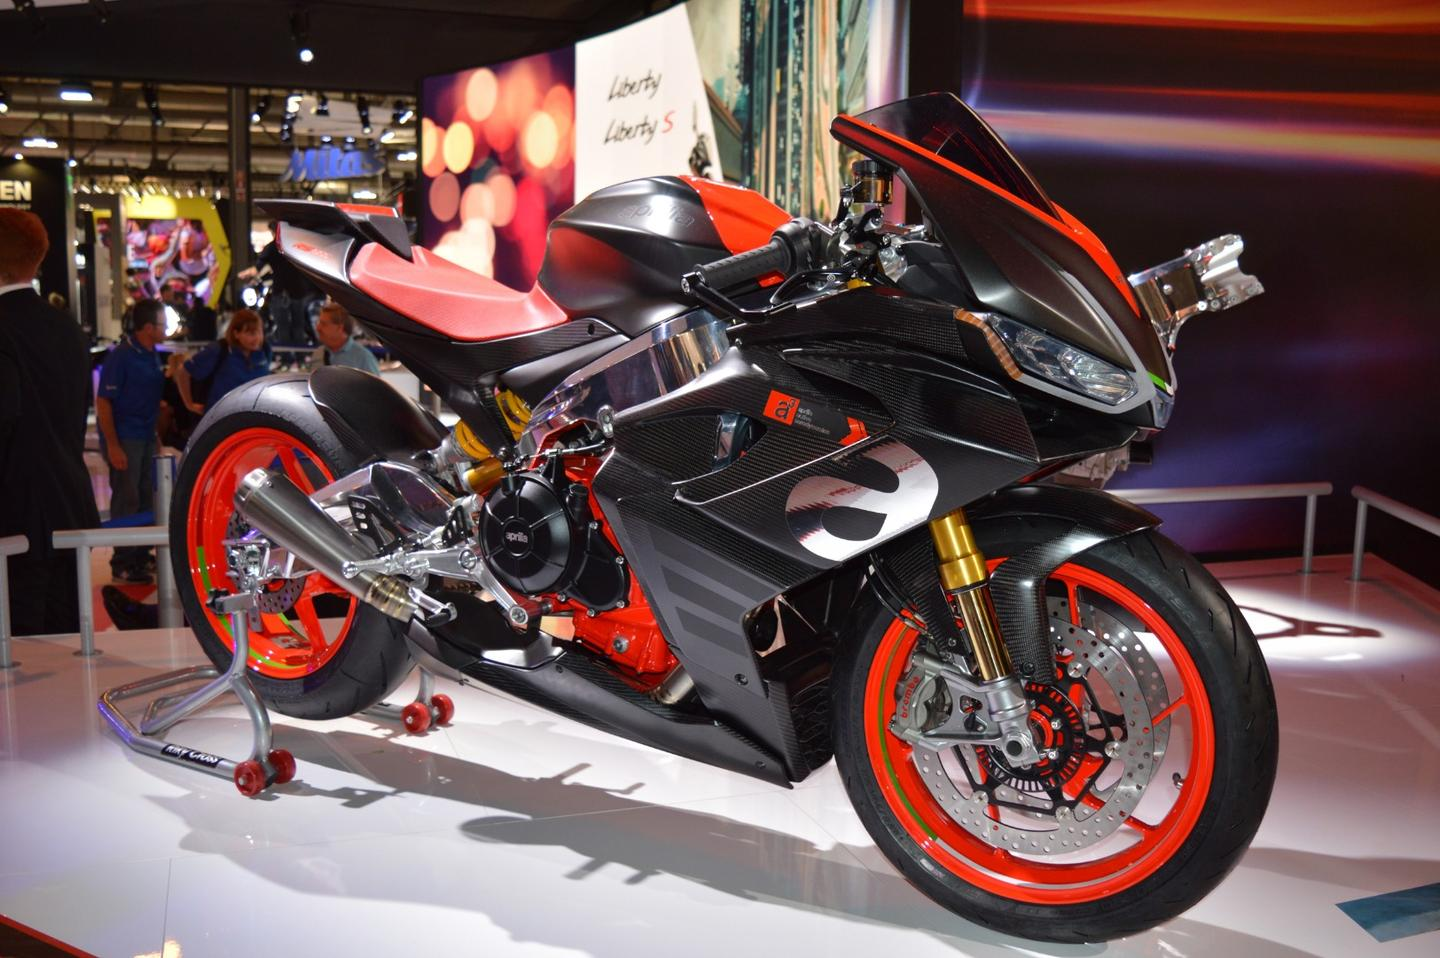 The Concept RS 660 previews an upcoming mid-levelmodel family built aroundan in-line twin engine born out of the front cylinder bank of Aprilia's V4 superbike